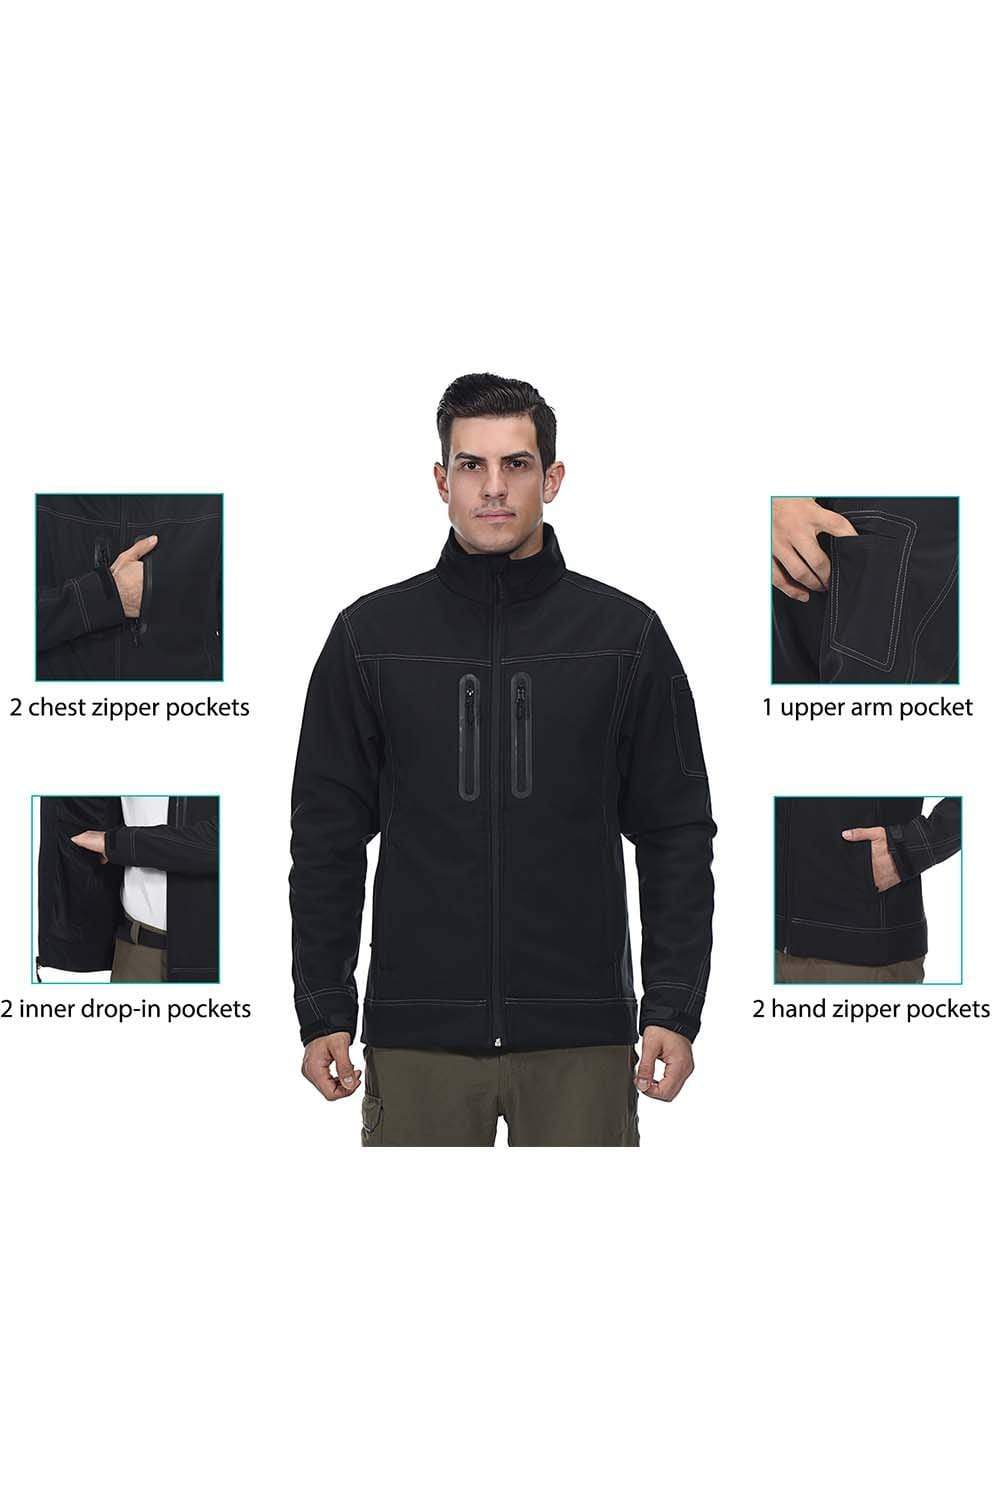 MIER Men's Softshell Jacket Outdoor Tactical Jacket with Fleece Lined, 7 Pockets